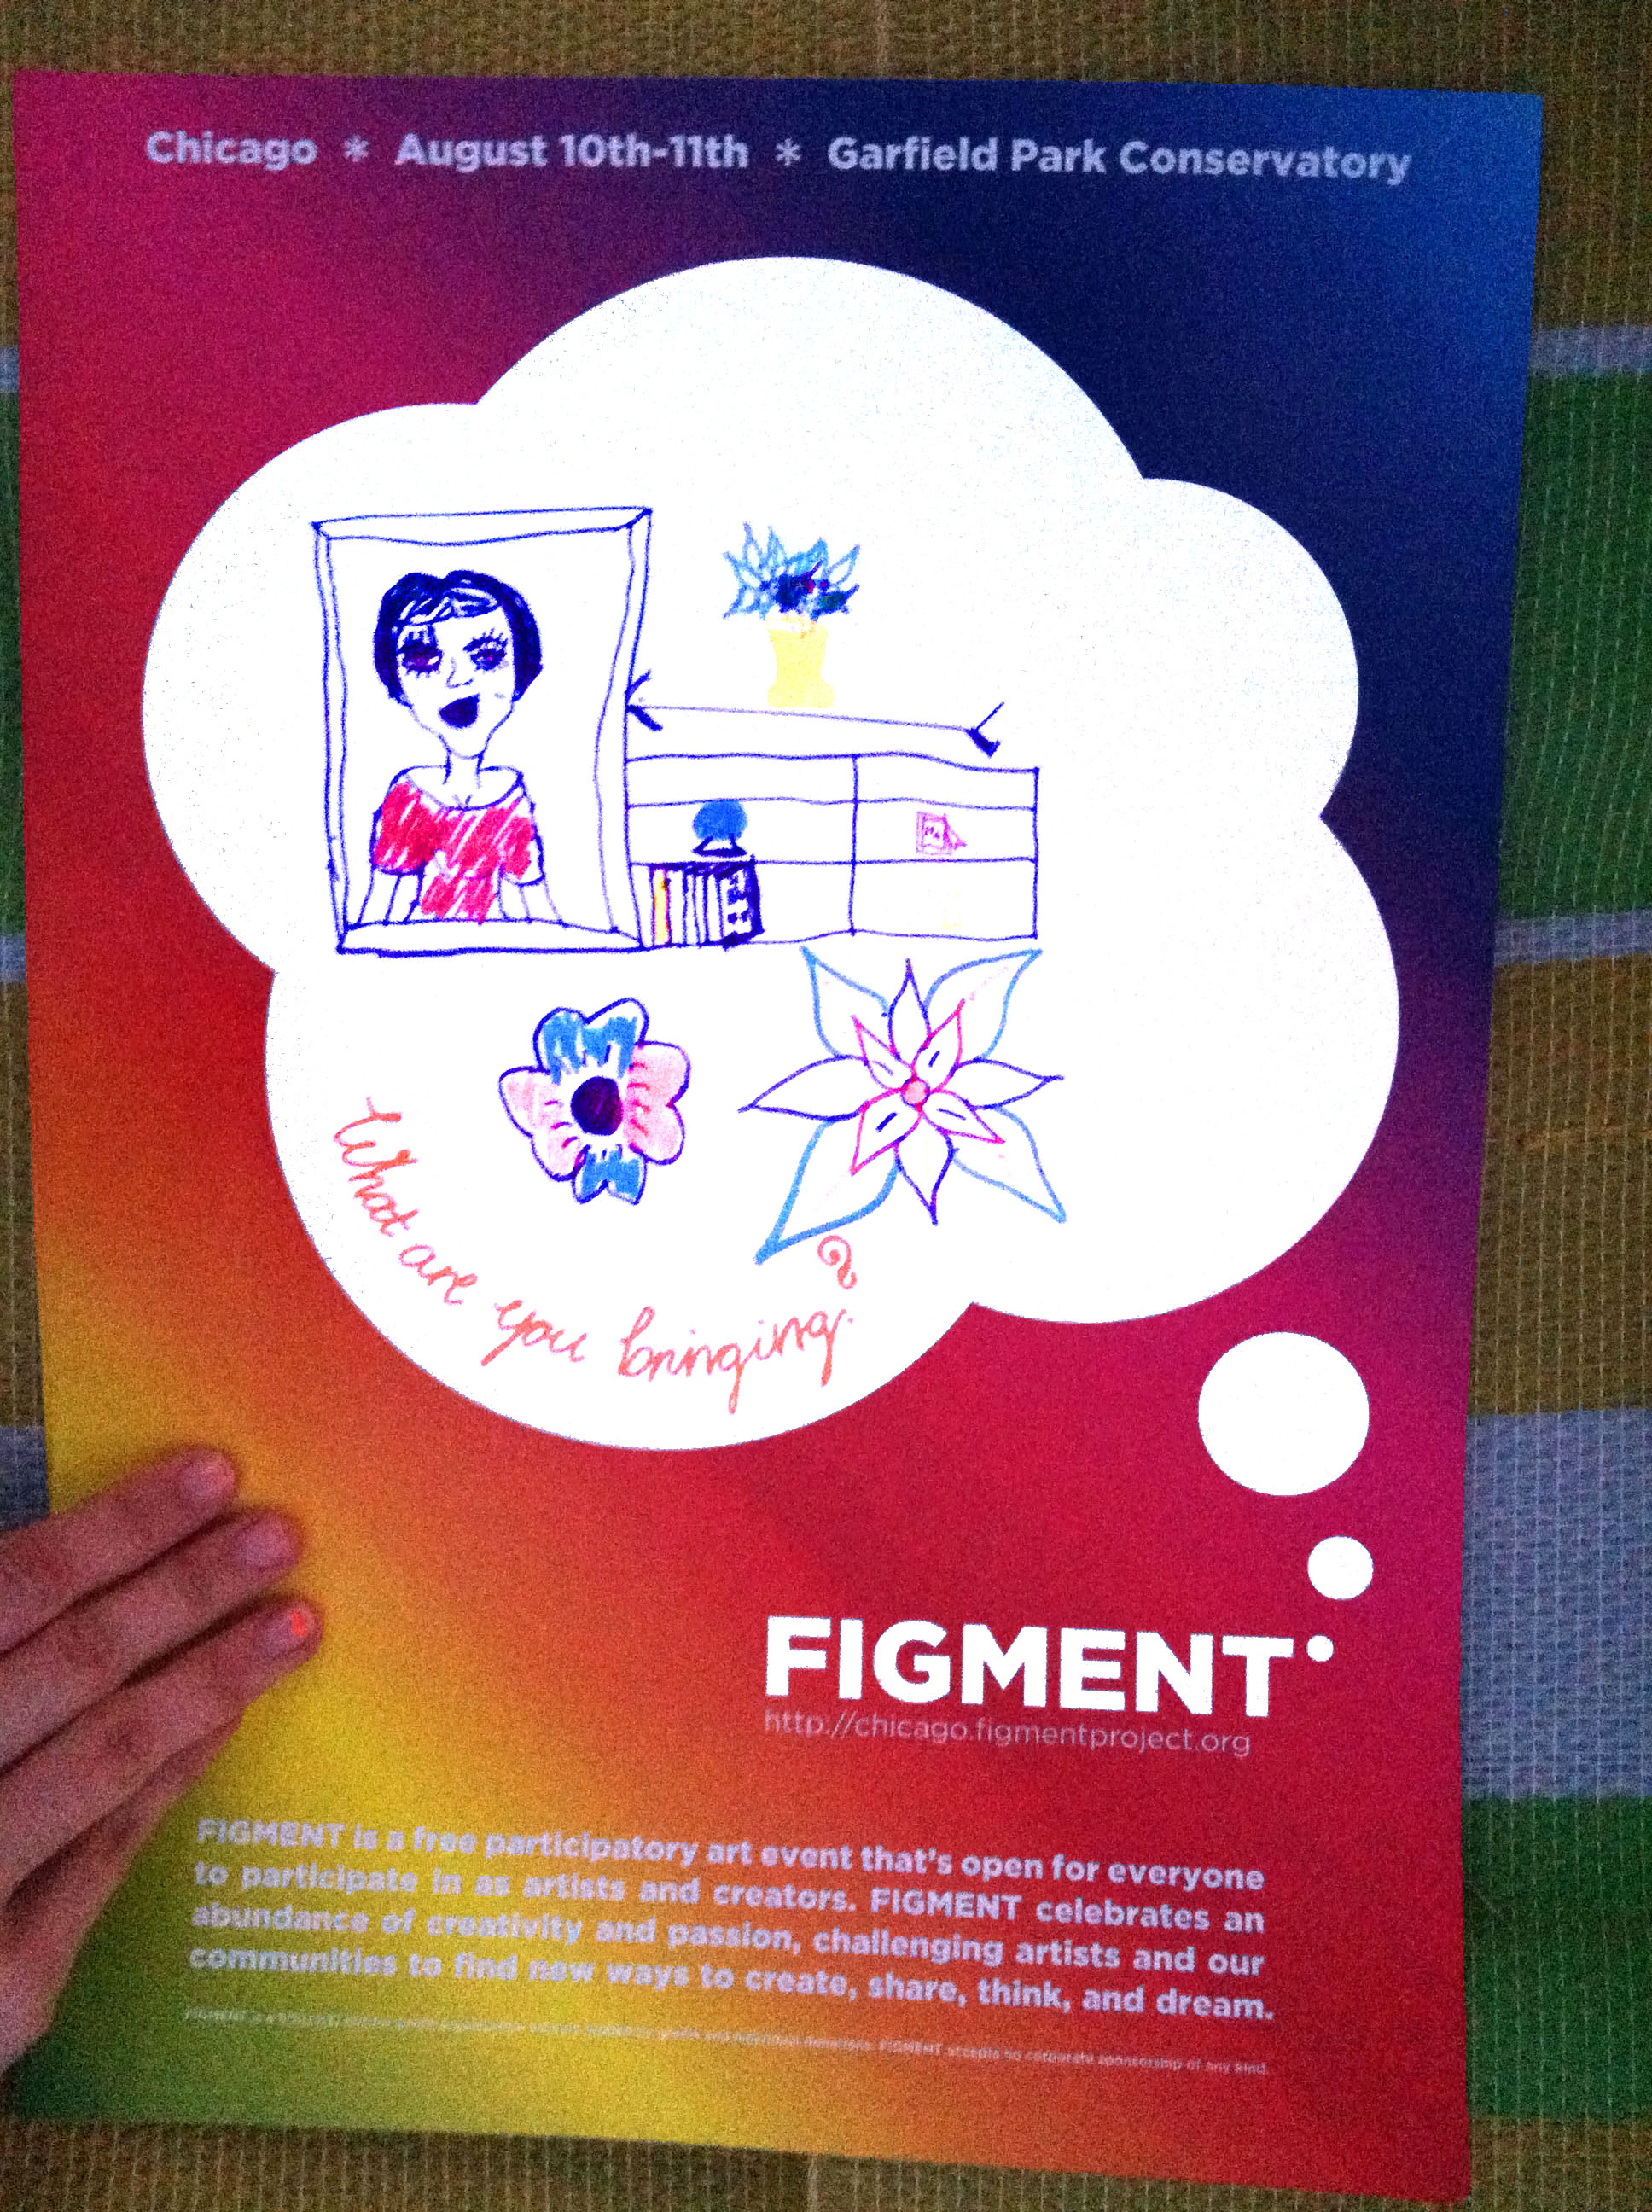 Chicago_West_Side_Youth_Adds_Art_to_FIGMENT_Poster.jpg